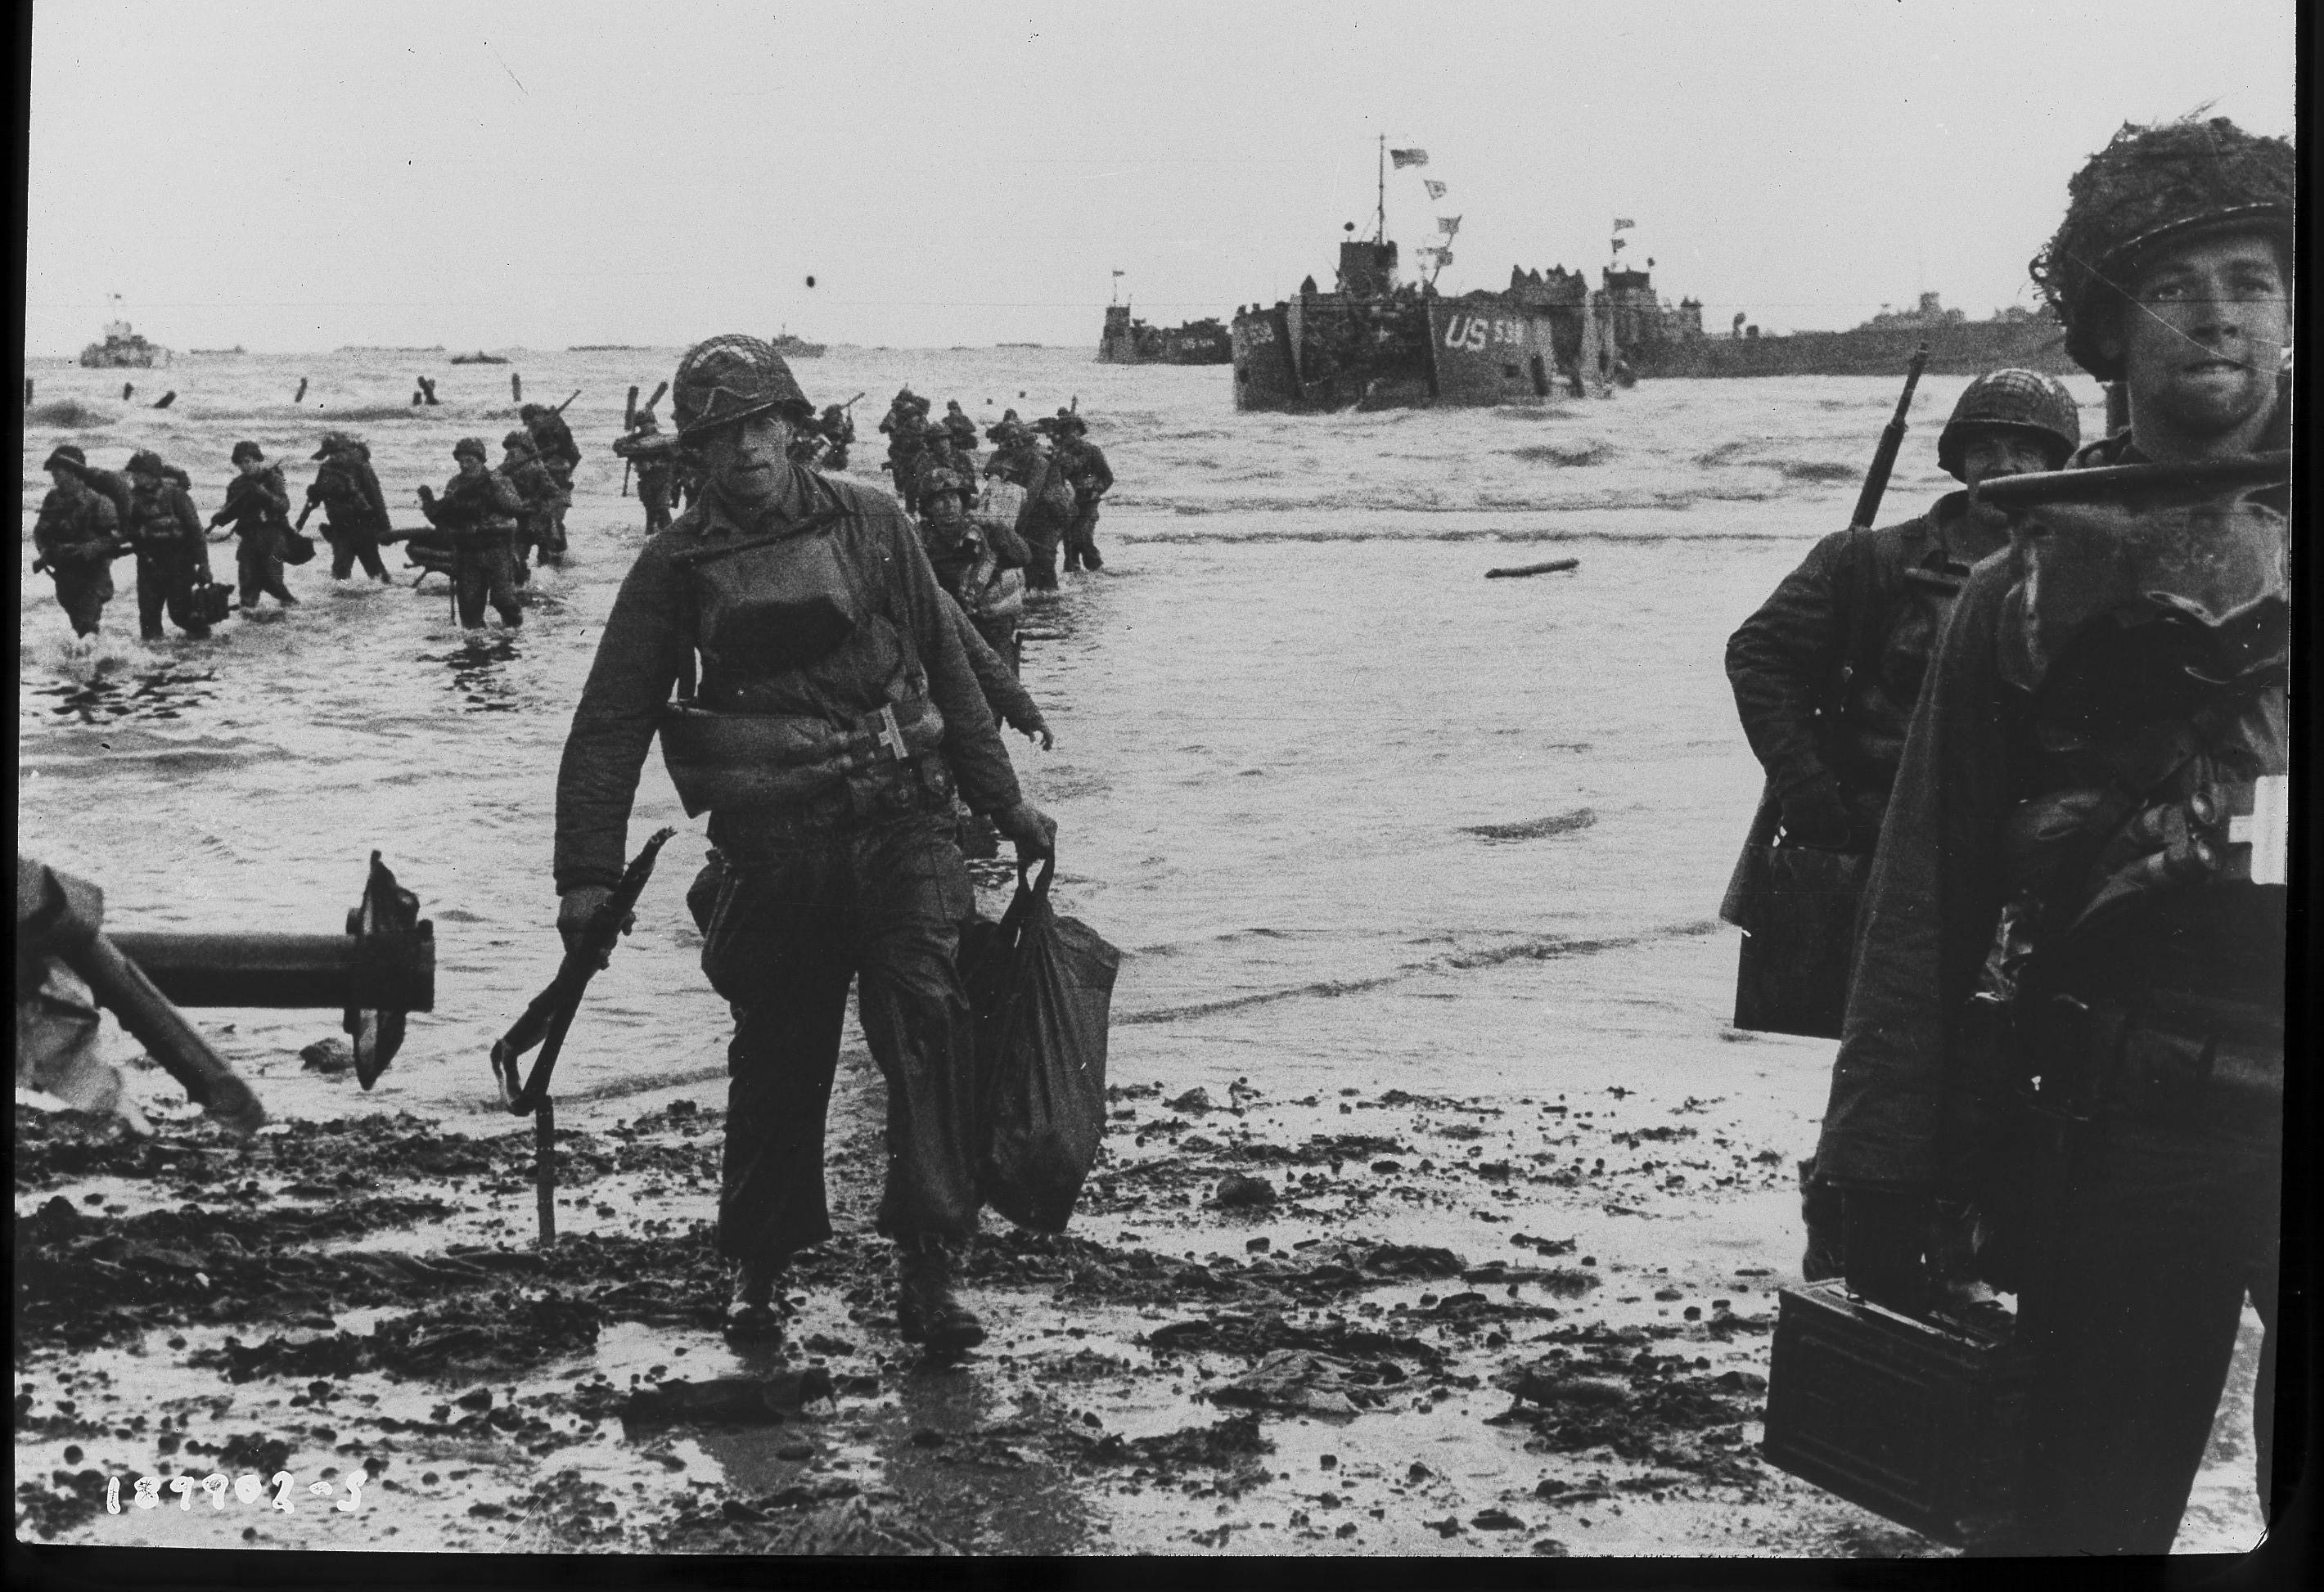 Pfc. Harold Wordeman, an engineer, landed on Easy Red Beach at 11:30 a.m. on D-Day from LCT 538. He was photographed by Capt. Herman Wall.